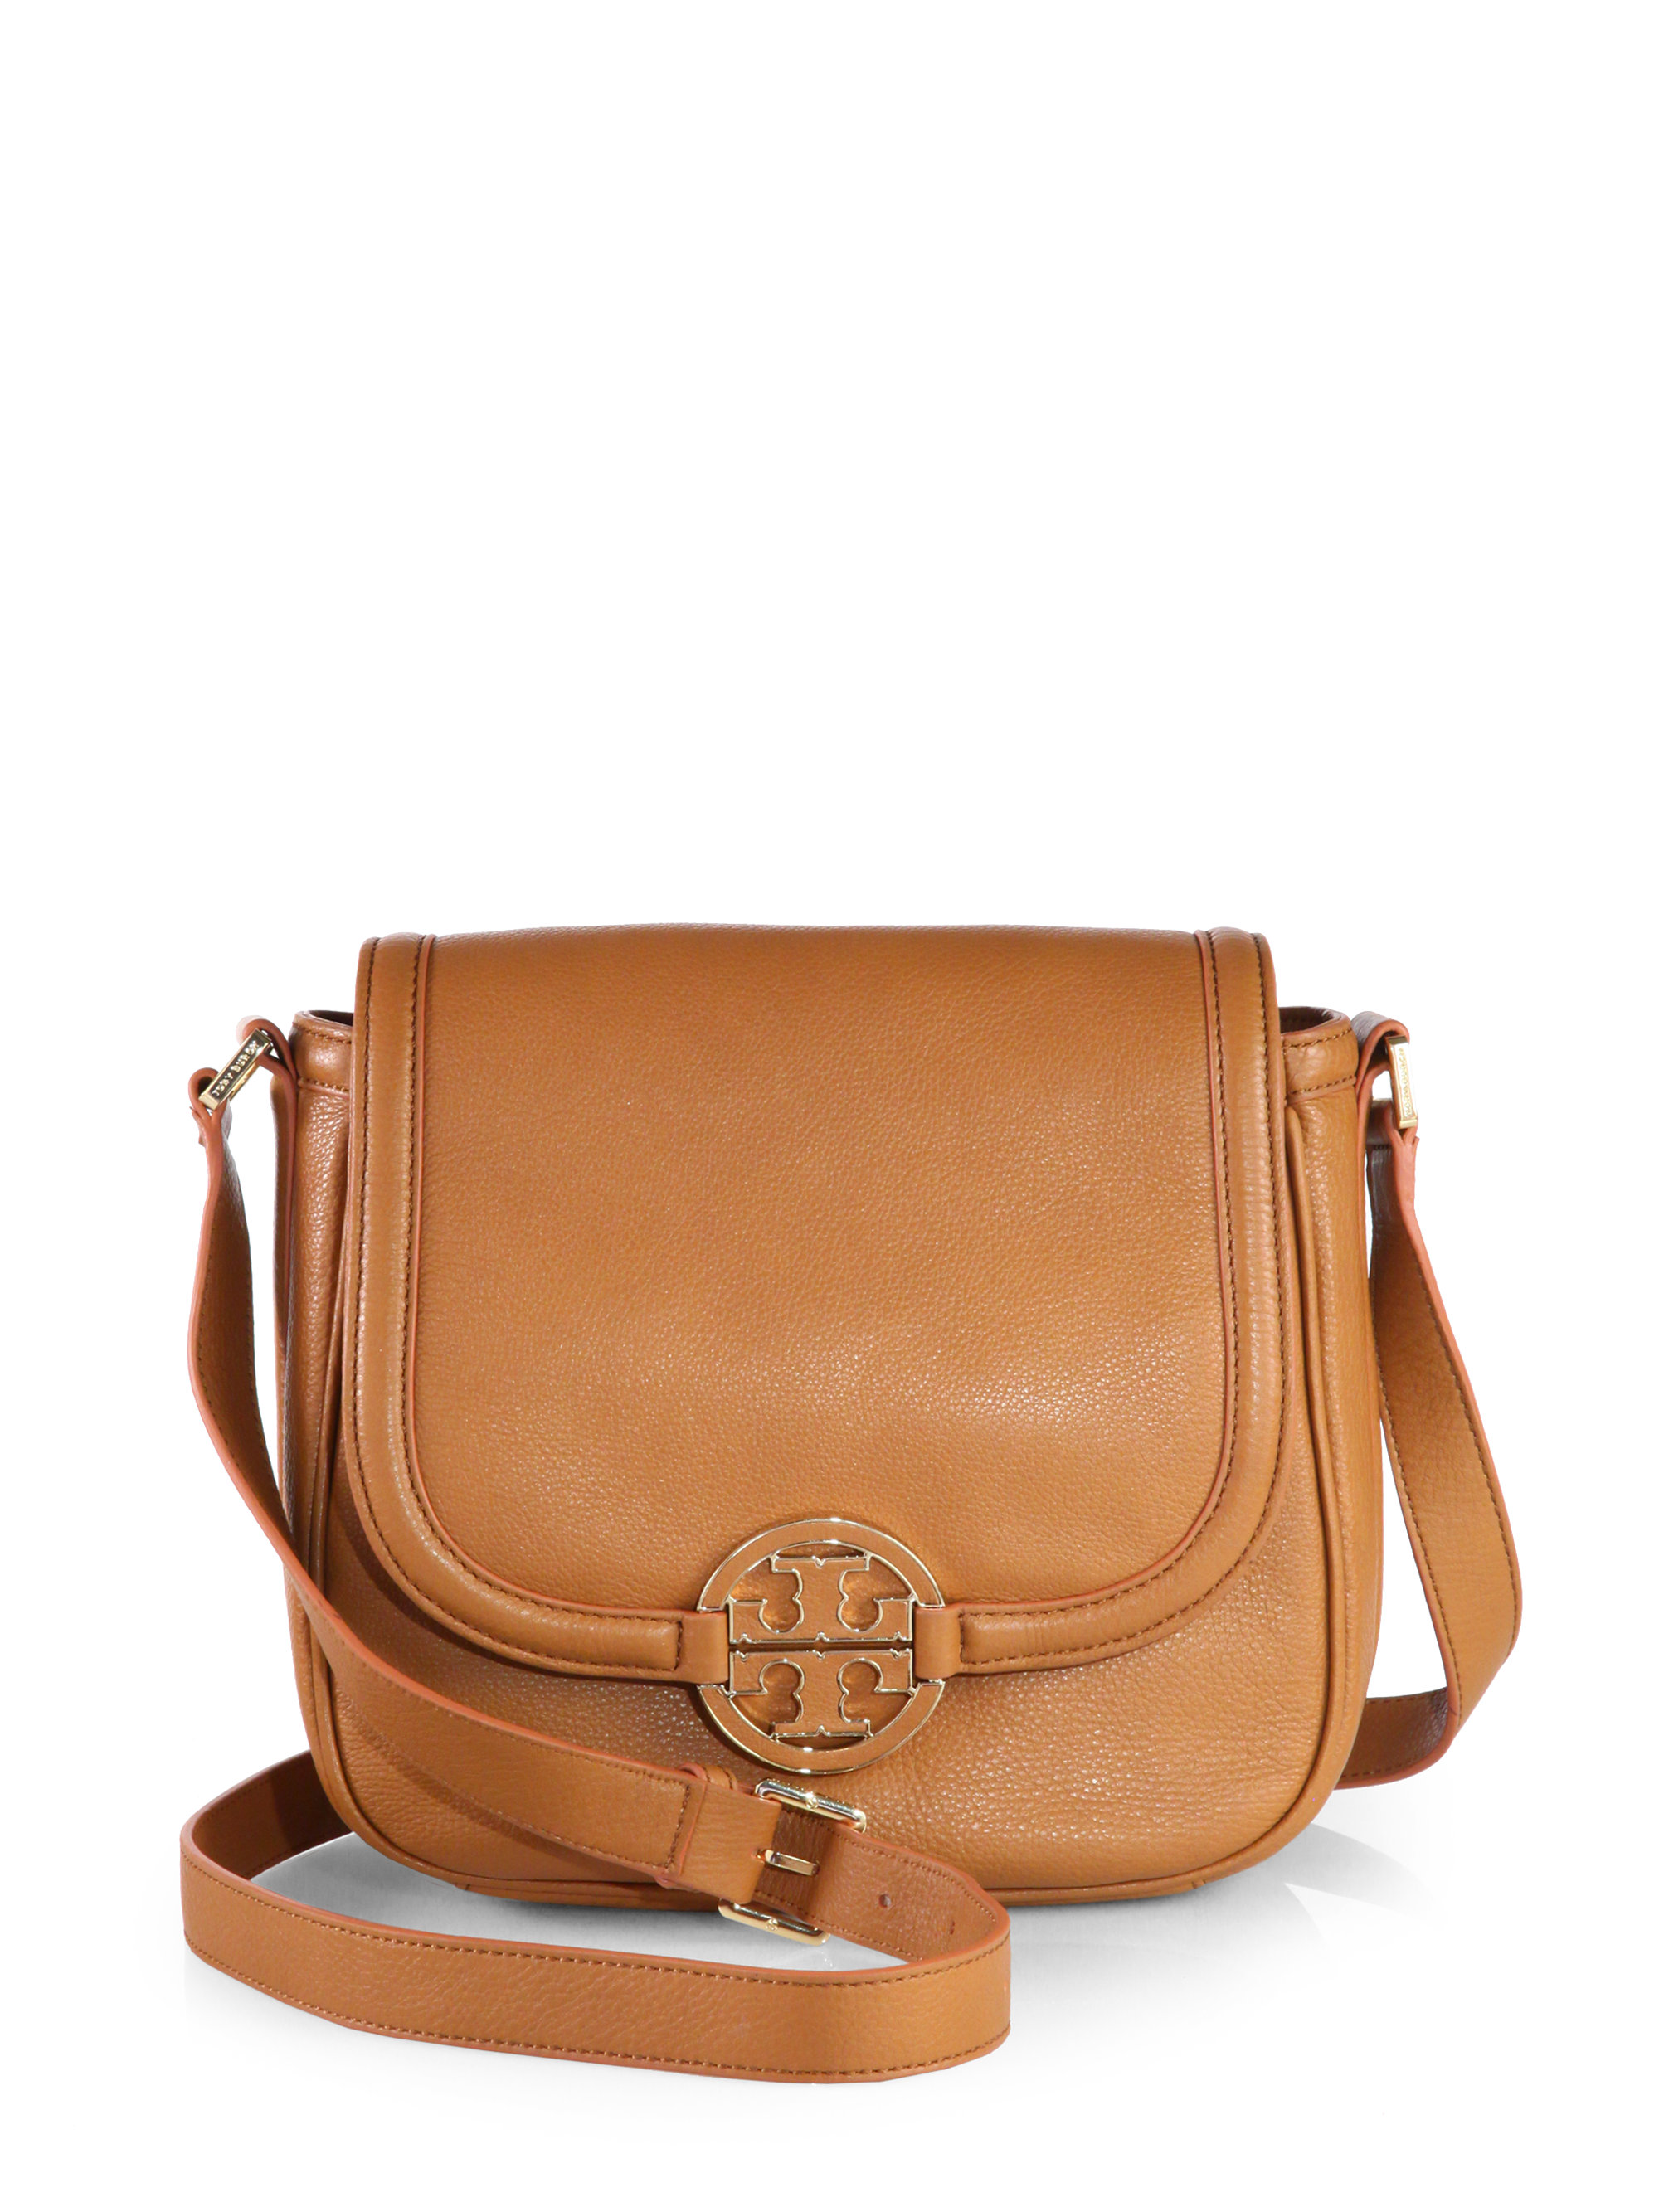 419433415fe Gallery. Previously sold at: Saks Fifth Avenue · Women's Tory Burch Amanda